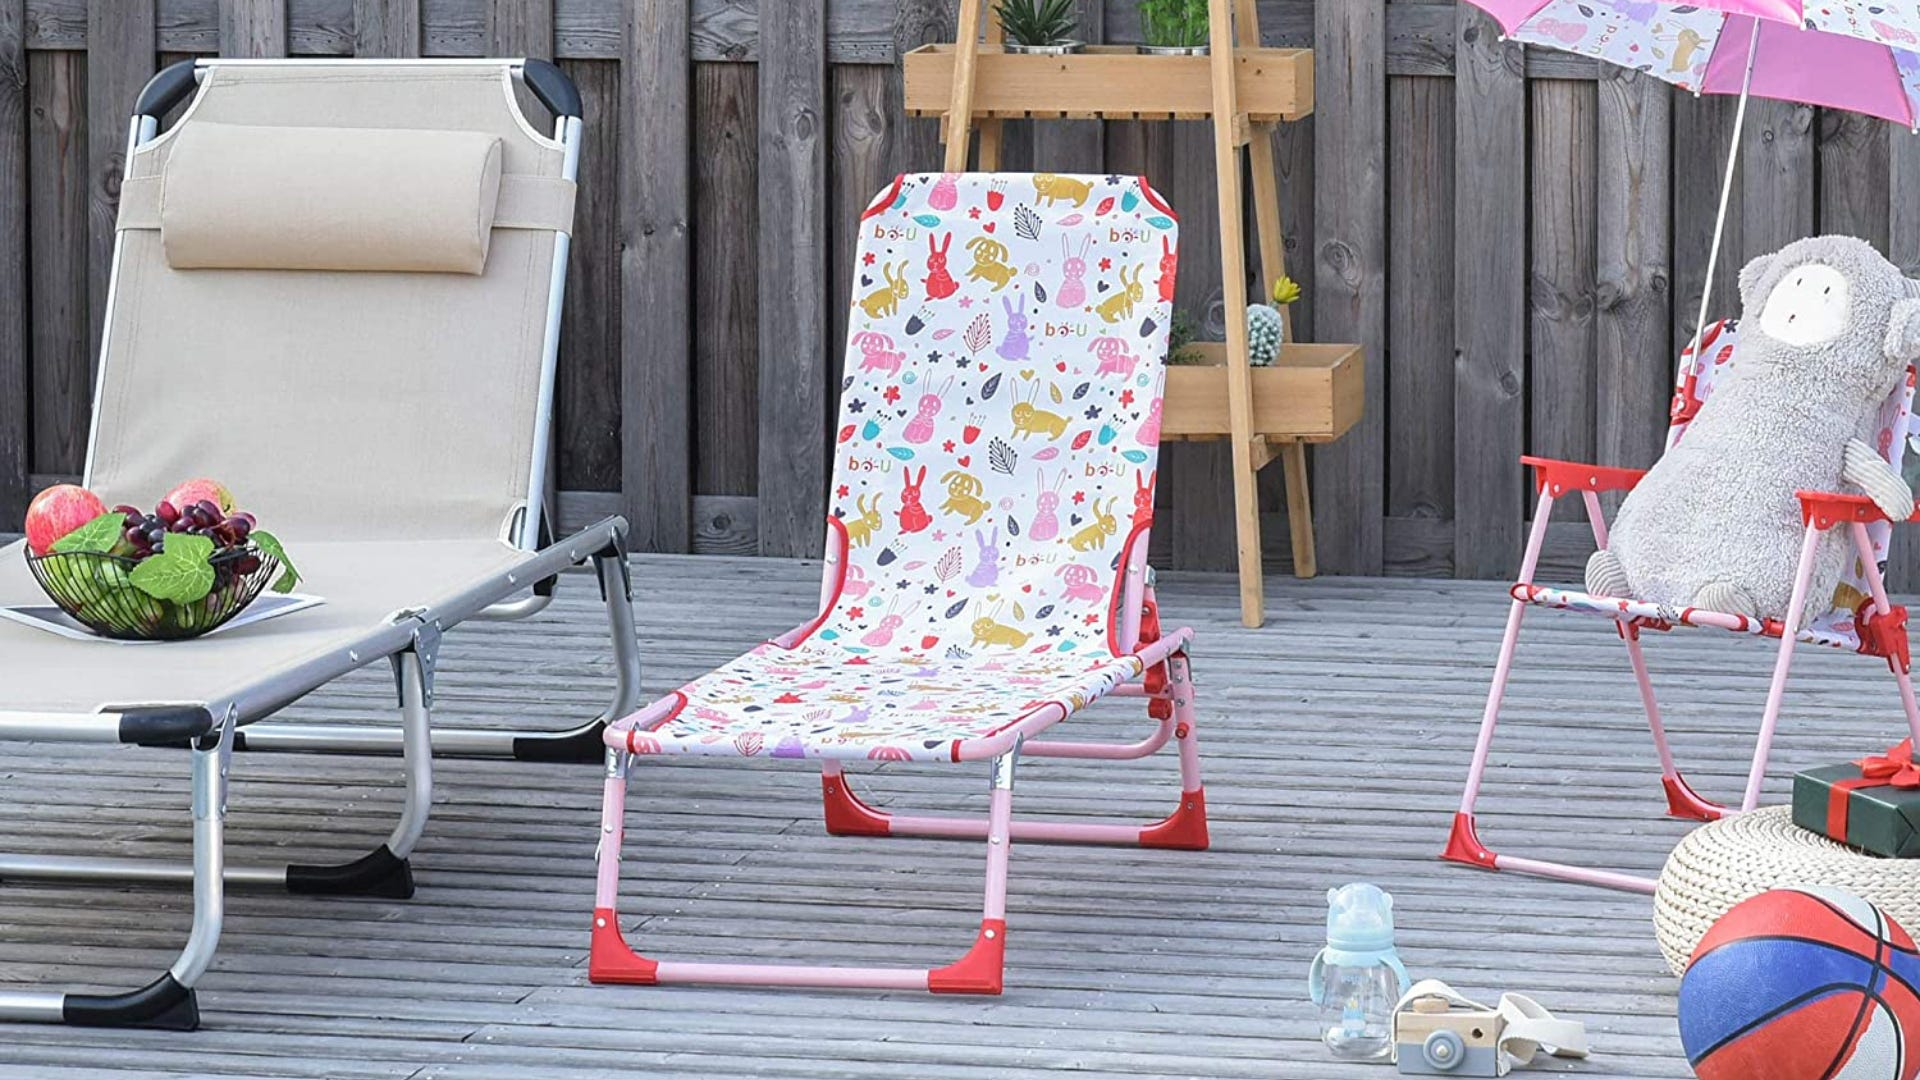 A colorful child's chaise lounge chair sitting next to toys on a deck.